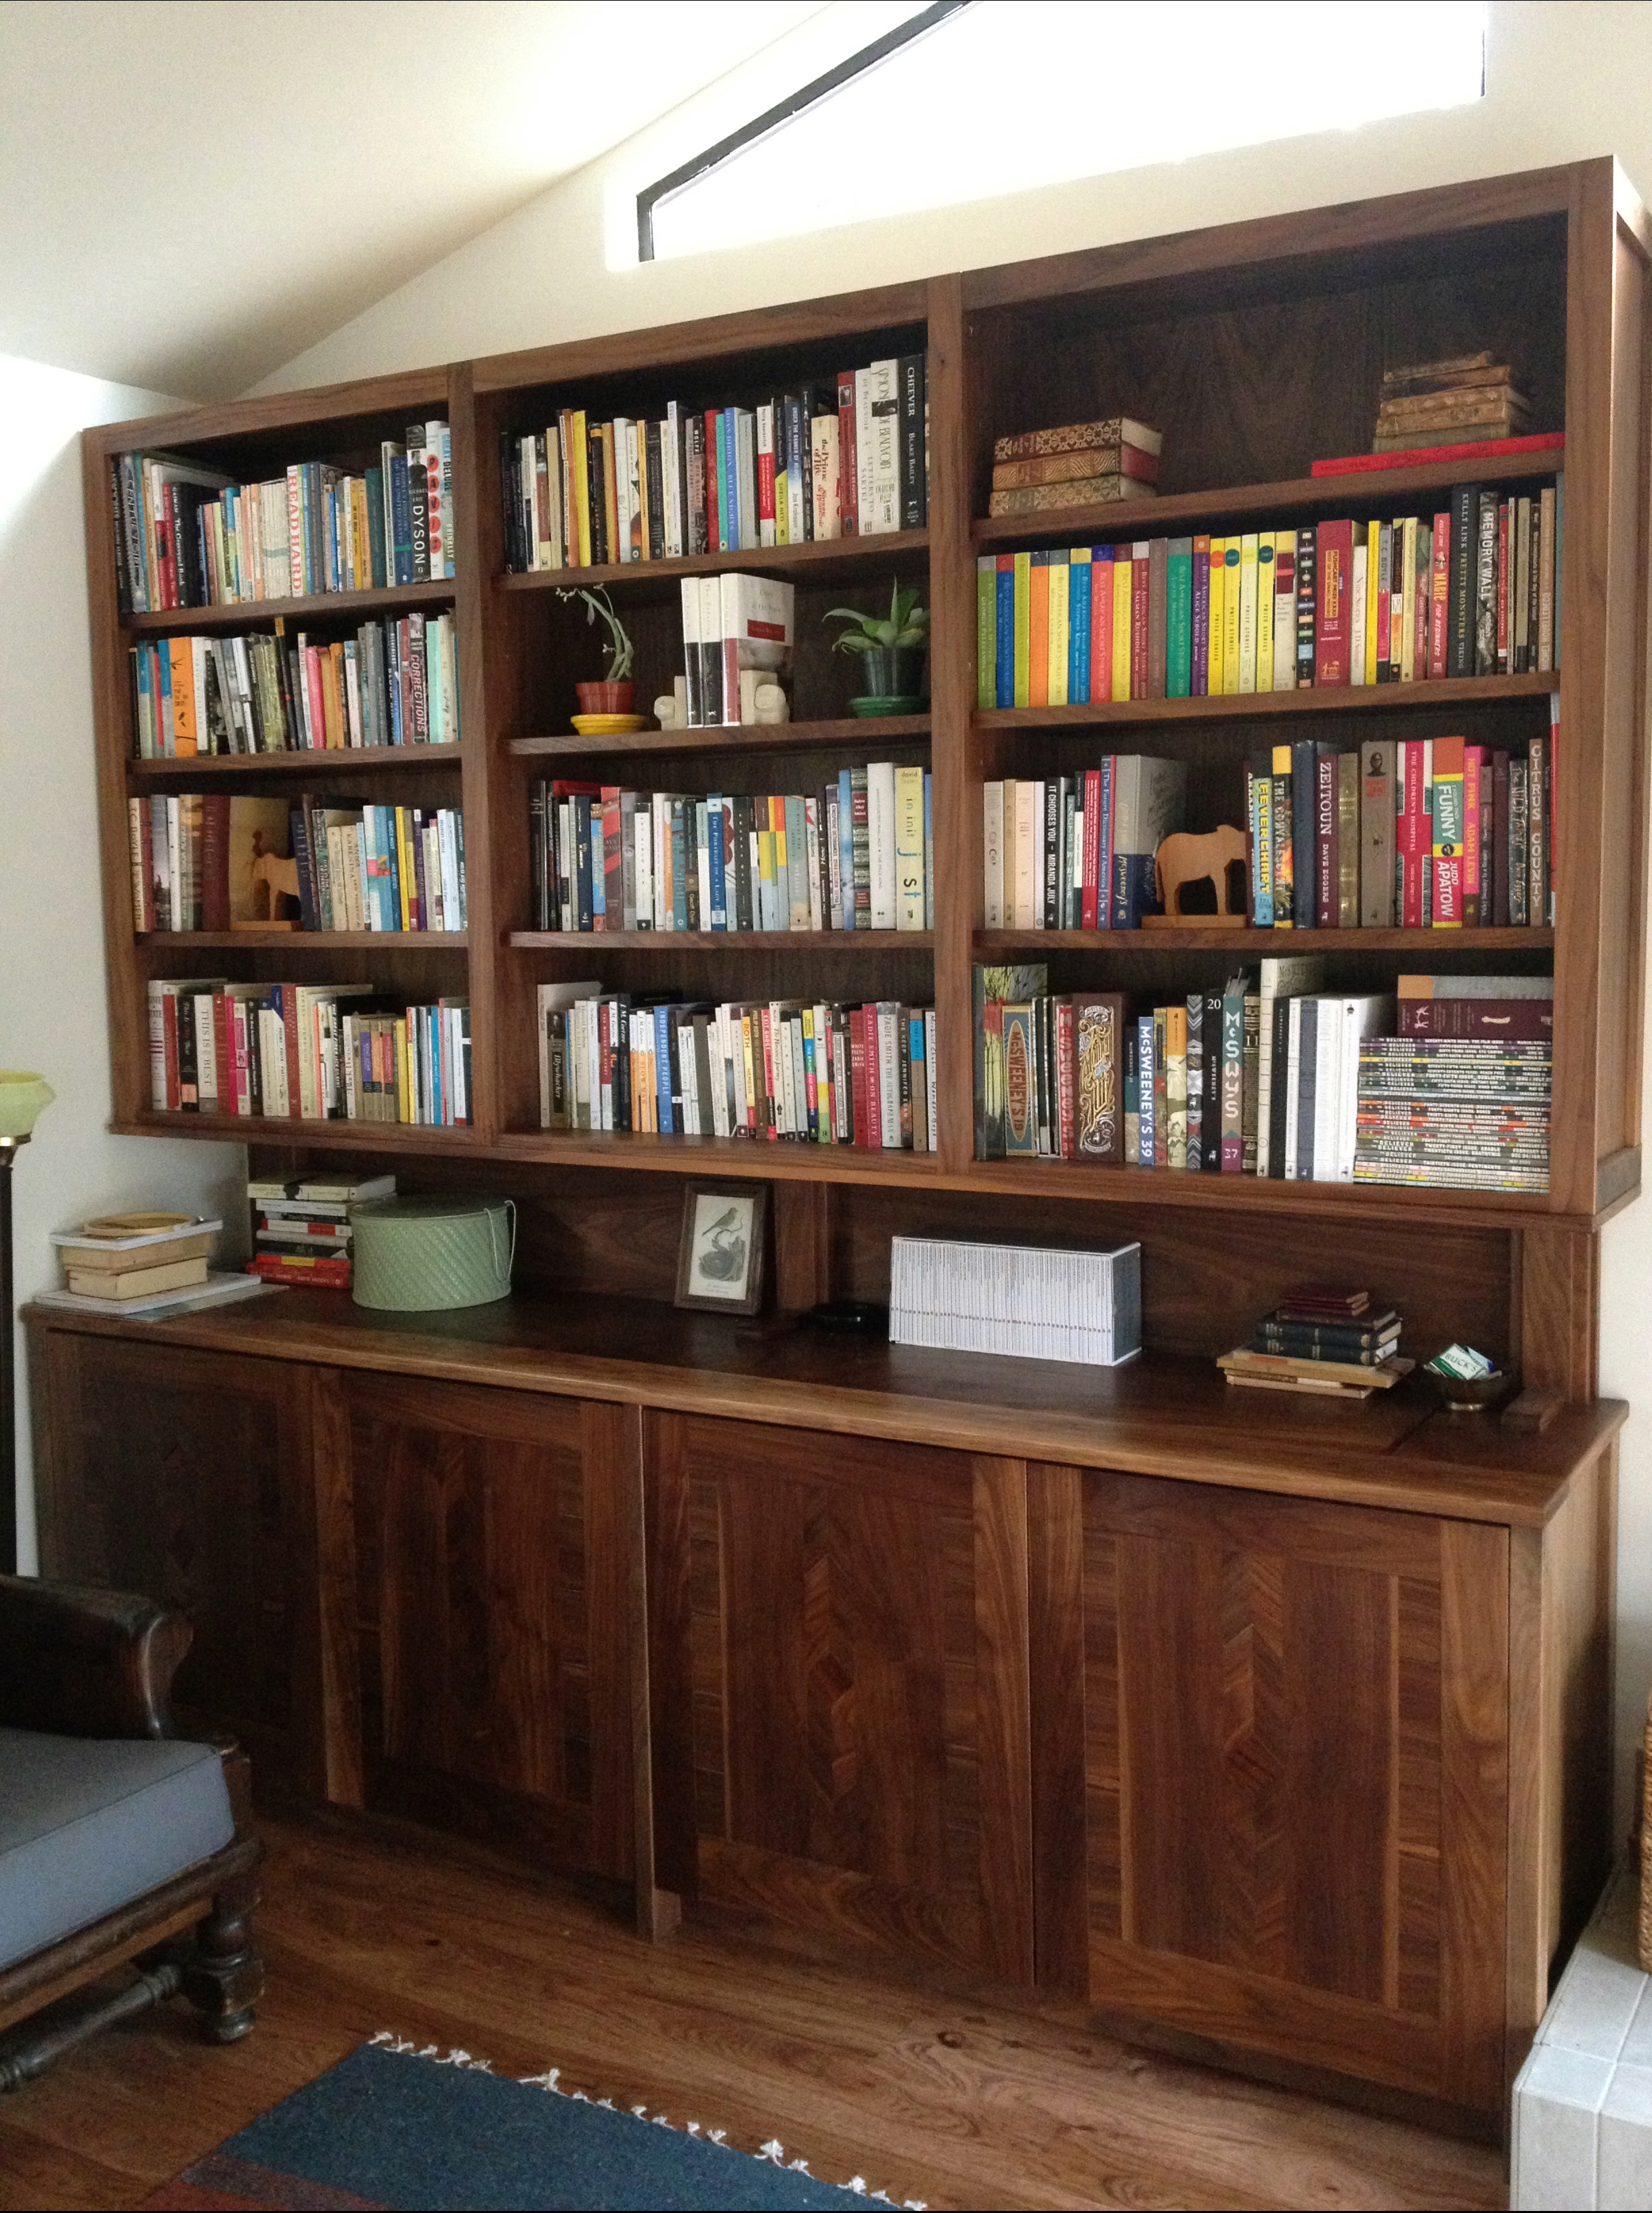 Built-in Cabinets/Bookshelves- Guerneville